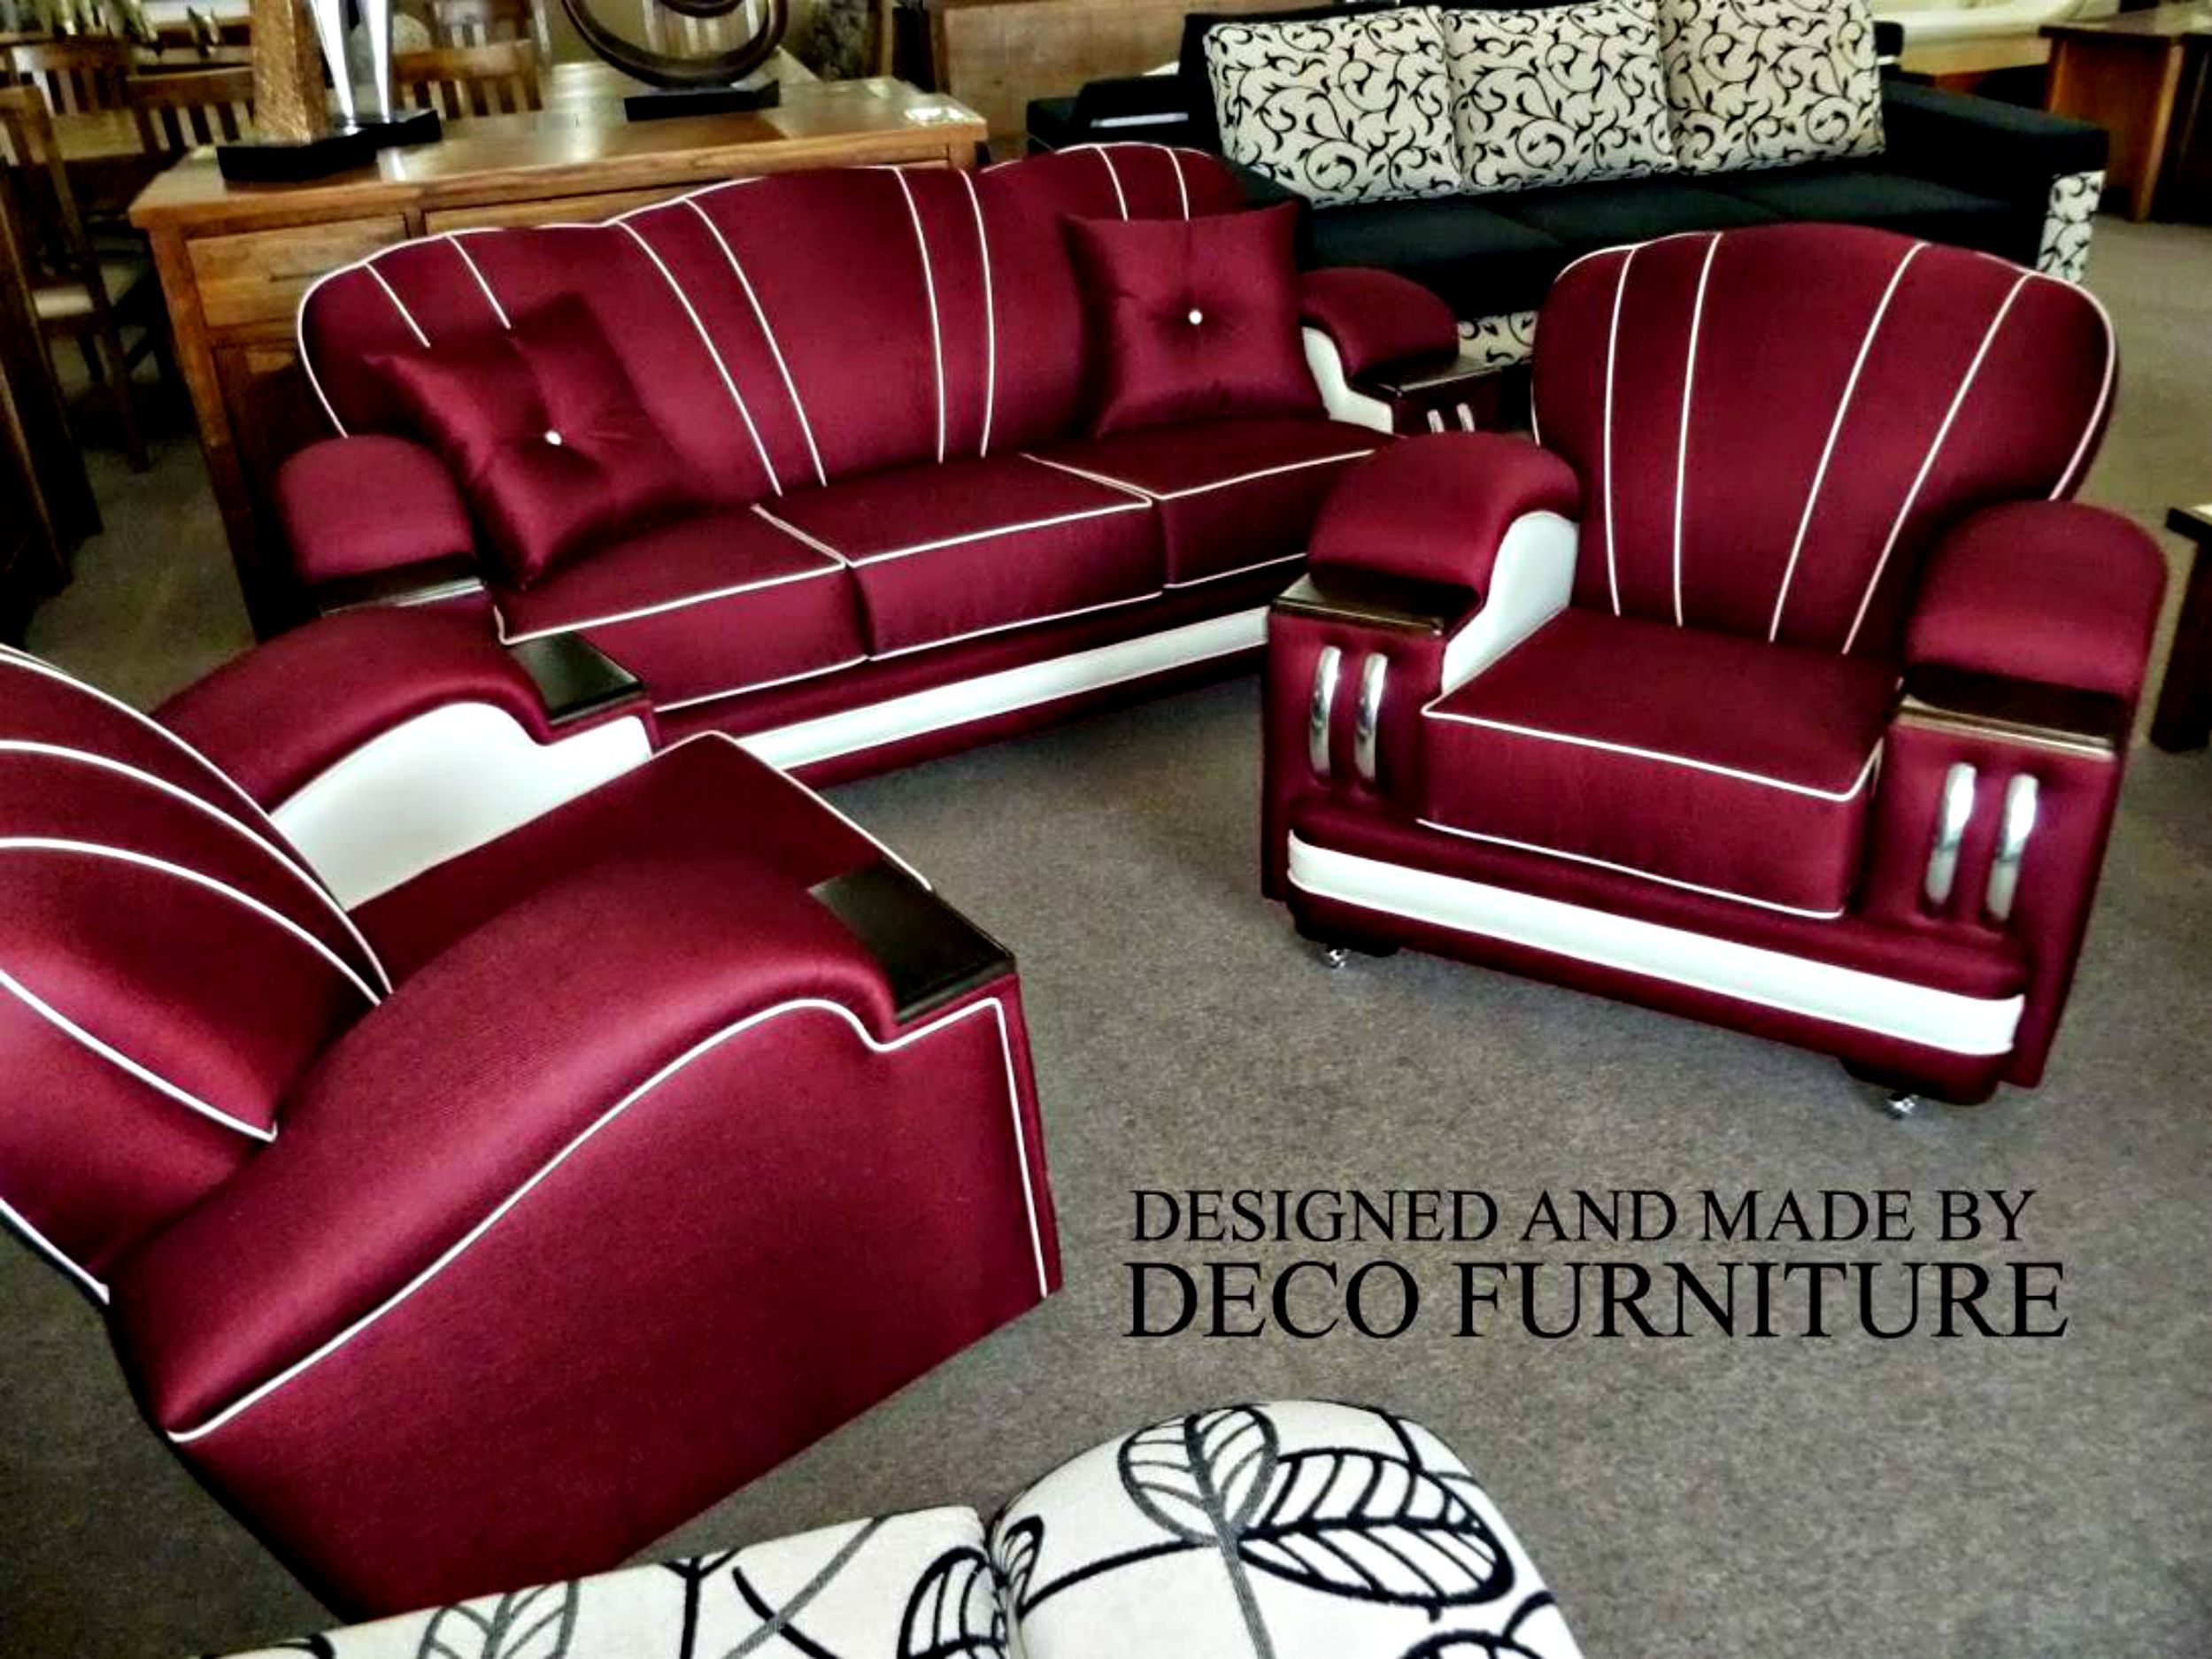 brand new Australian made. made by deco furniture 100 ...